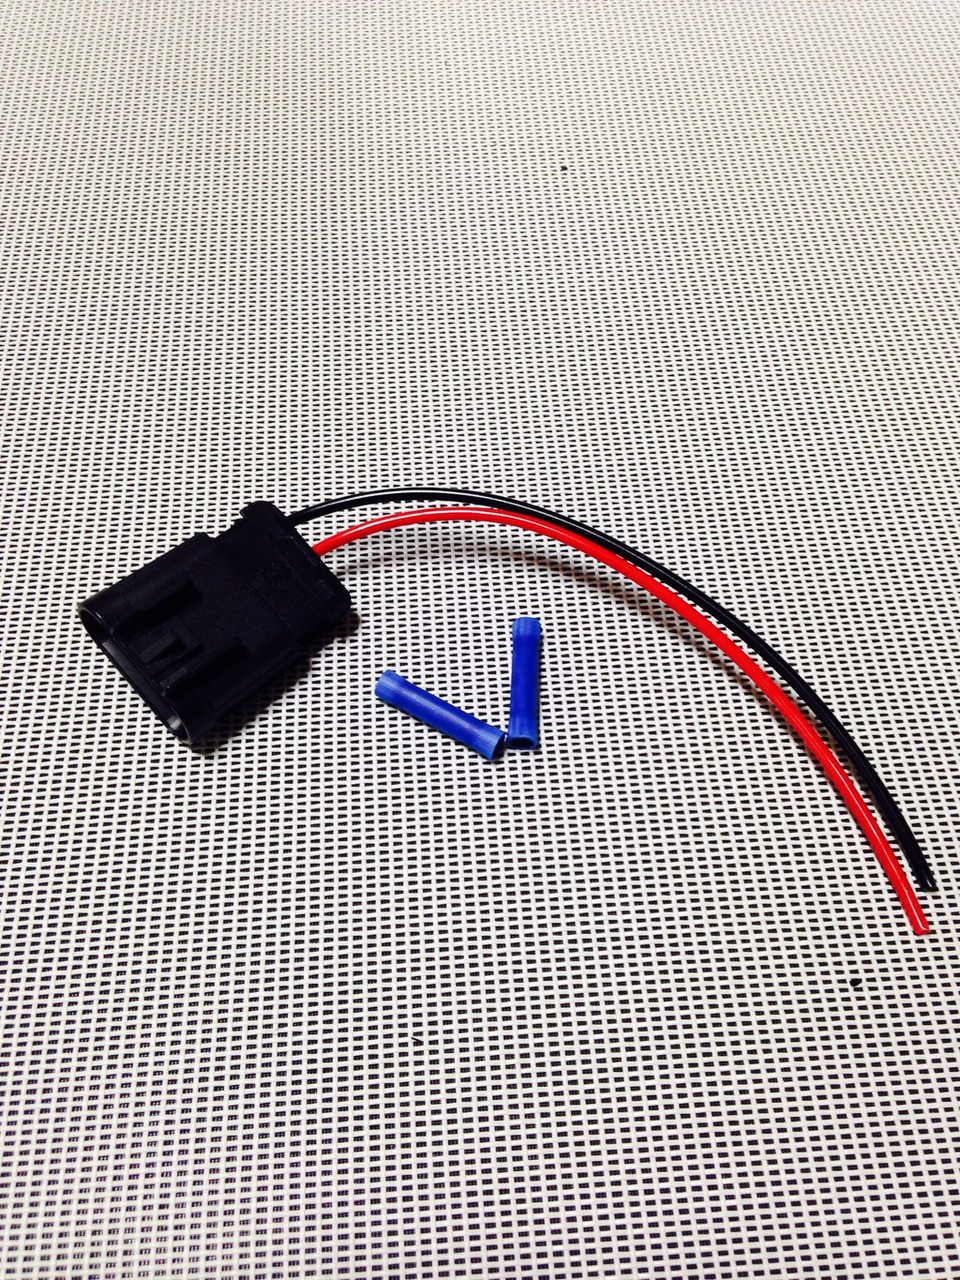 small resolution of xm chassis led wiring harness plug kit price 25 00 image 1